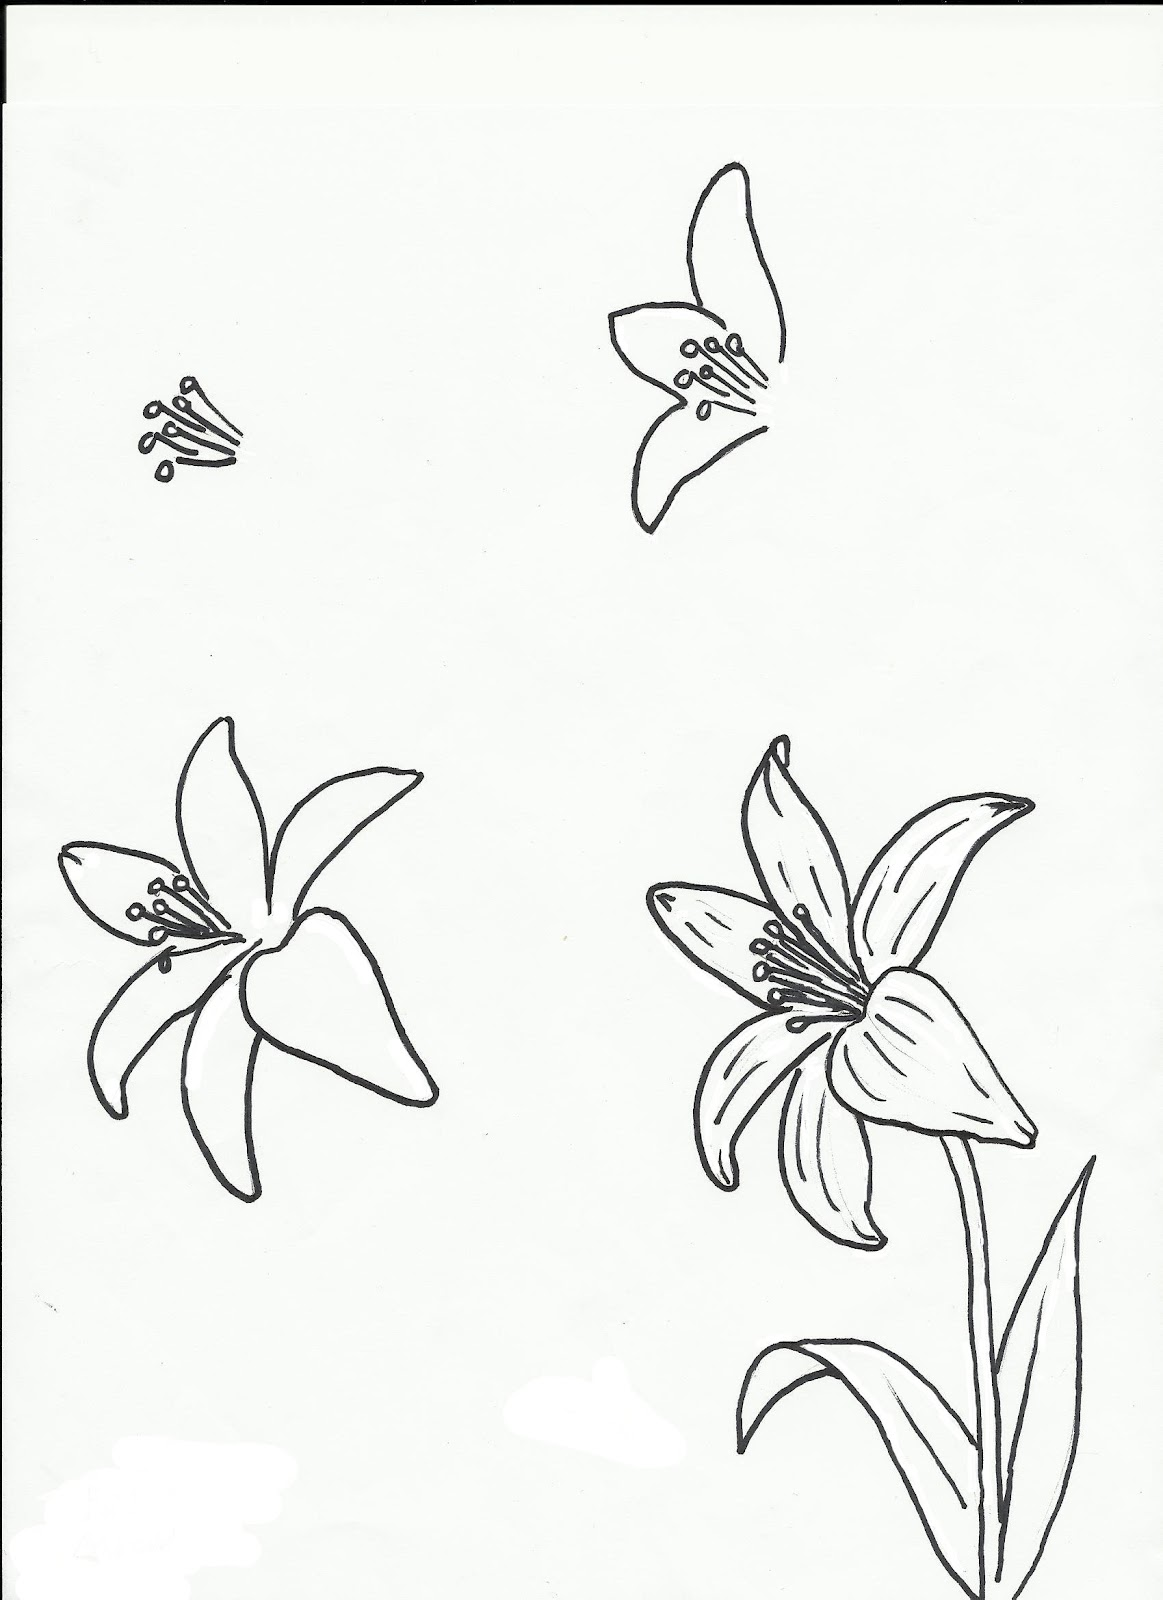 White lily drawing at getdrawings free for personal use white 1163x1600 how to draw a realistic lily step by how to izmirmasajfo Image collections